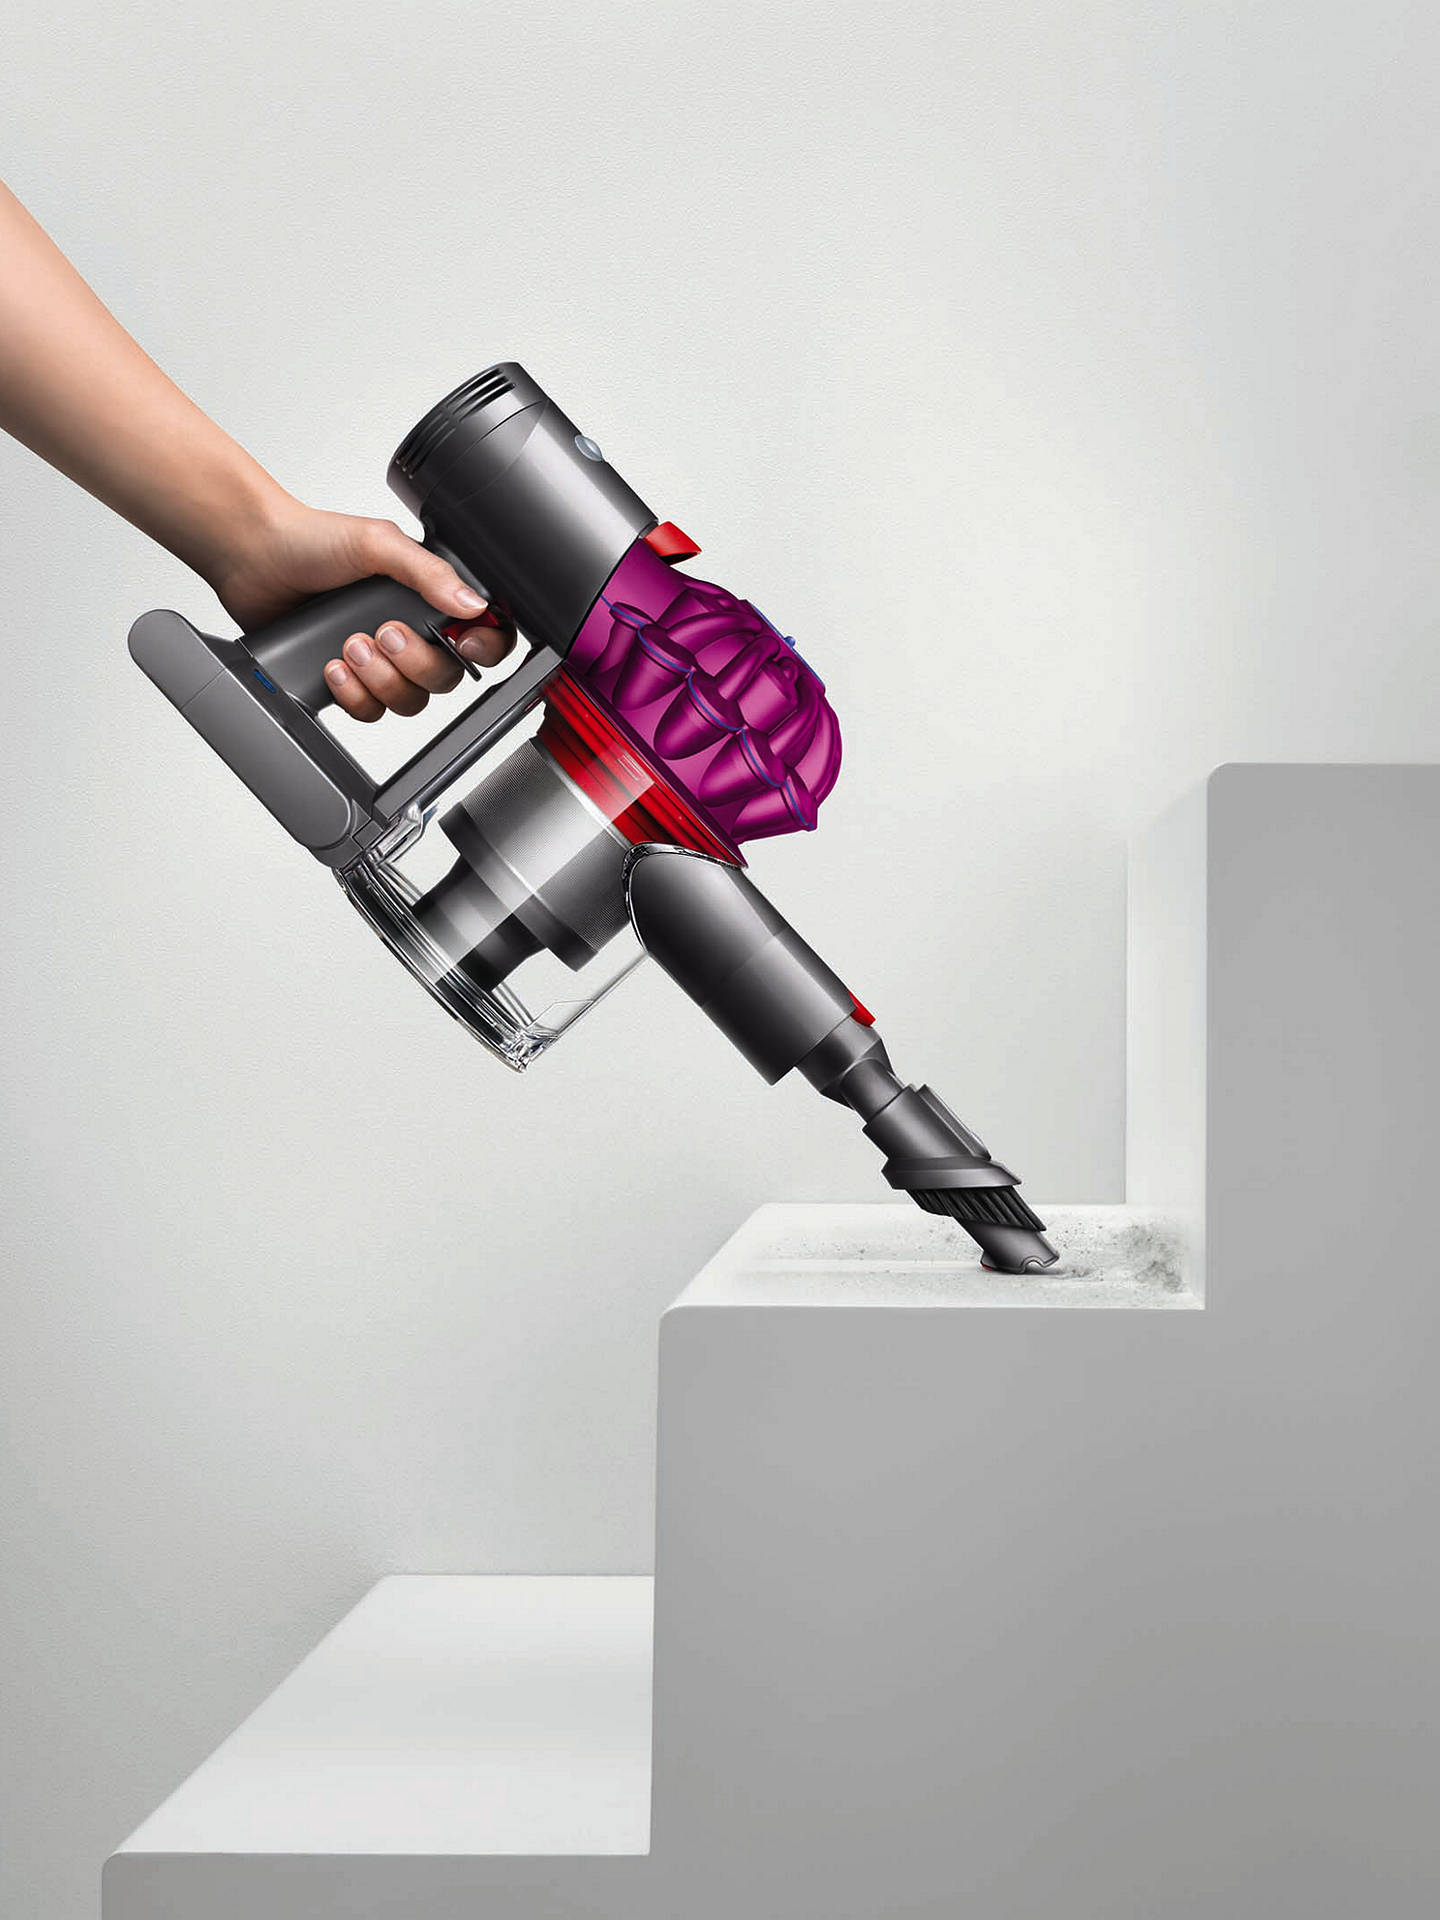 BuyDyson V7 Motorhead Cordless Vacuum Cleaner Online at johnlewis.com